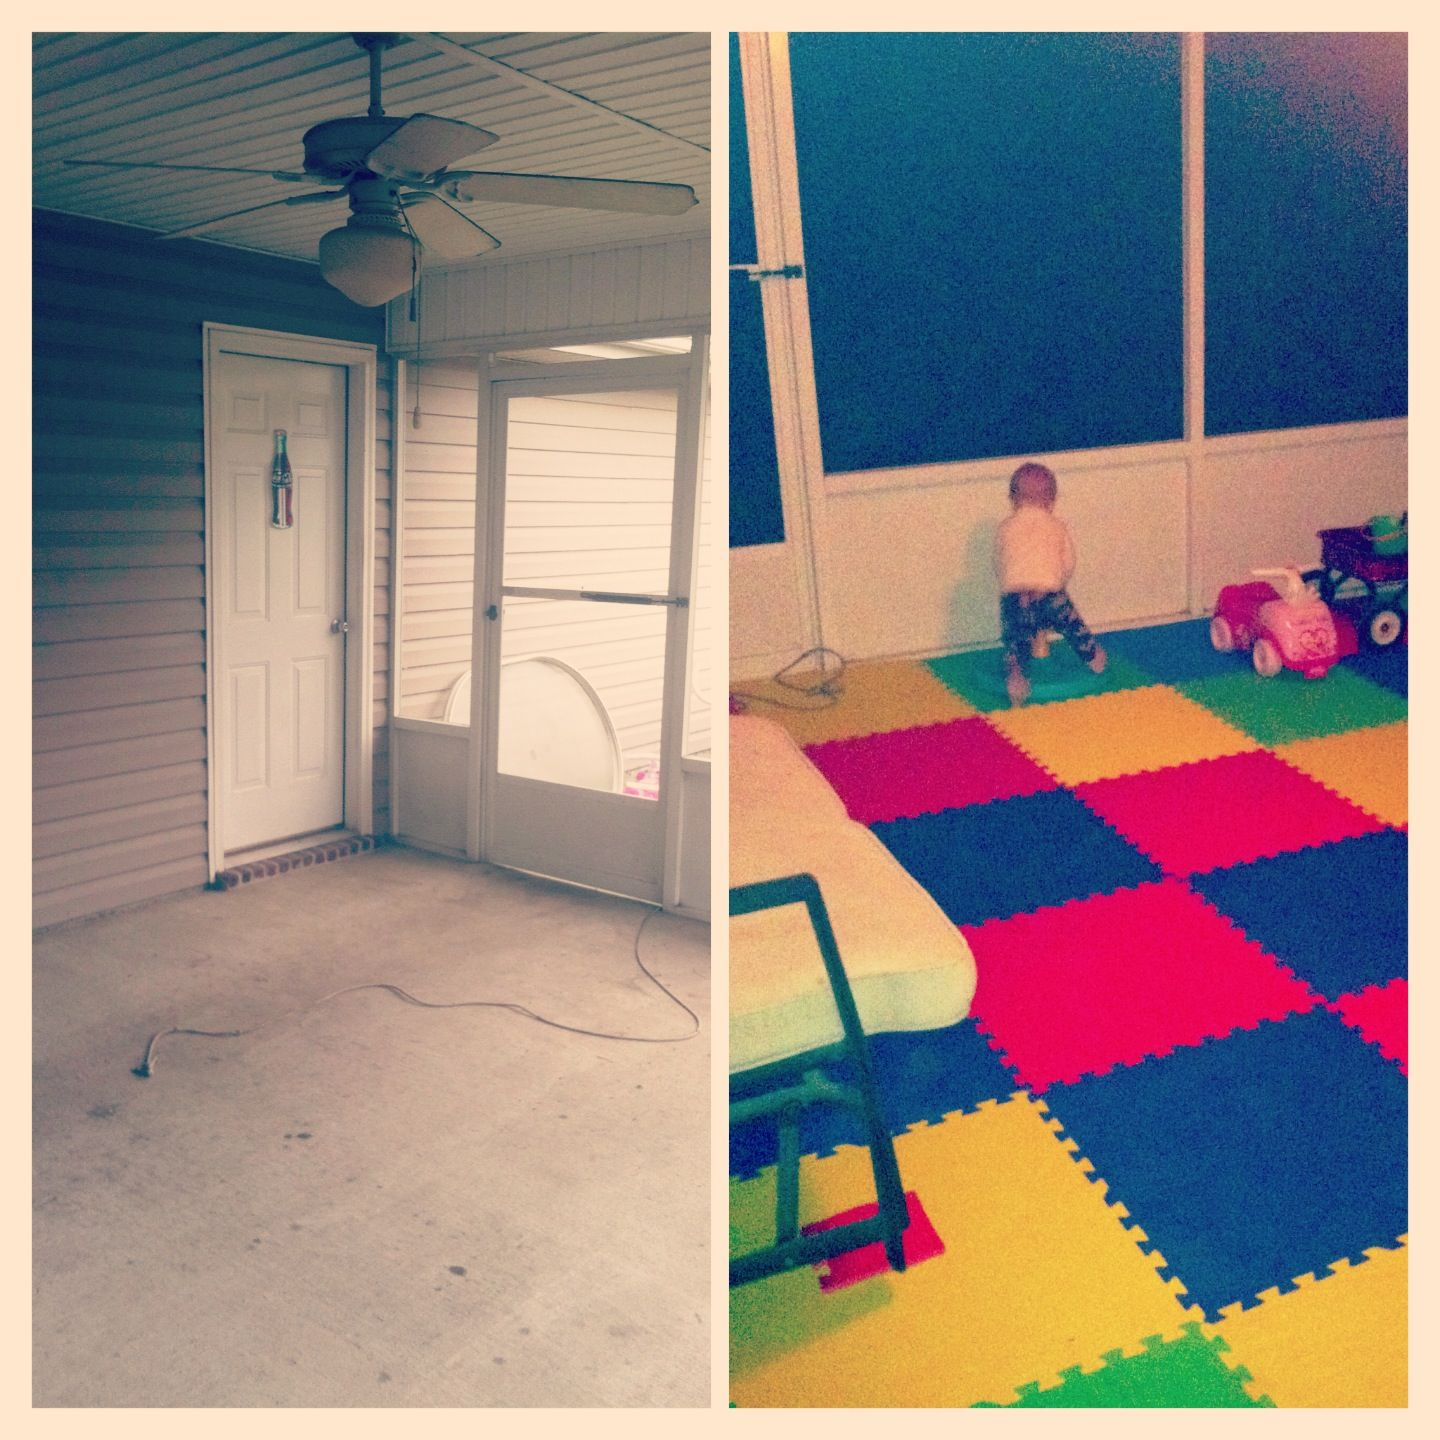 Transform Screened In Back Porch To A Playroom By Adding